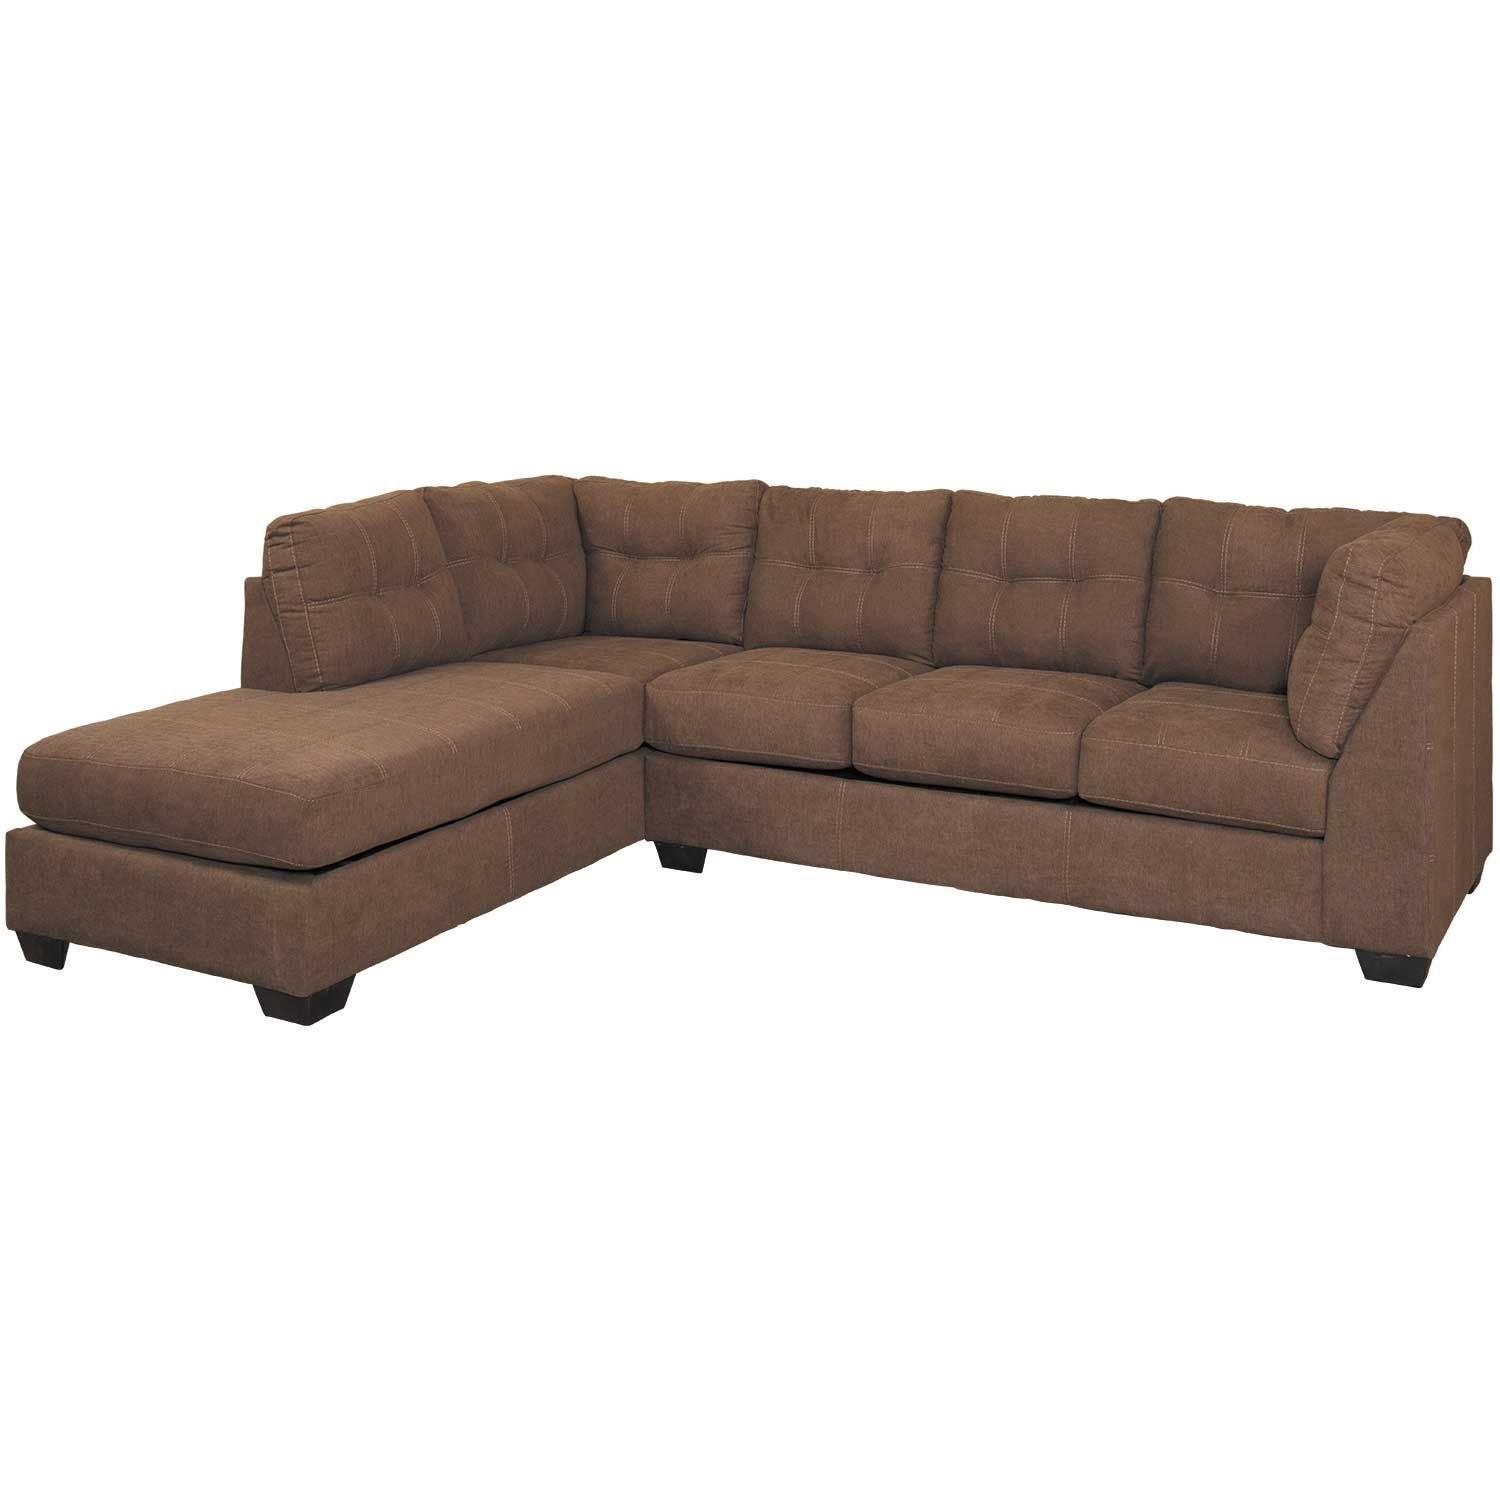 Maier Walnut 2 Piece Sectional With Laf Chaise | 4520116/67 | Ashley Throughout Arrowmask 2 Piece Sectionals With Sleeper & Right Facing Chaise (Image 16 of 25)